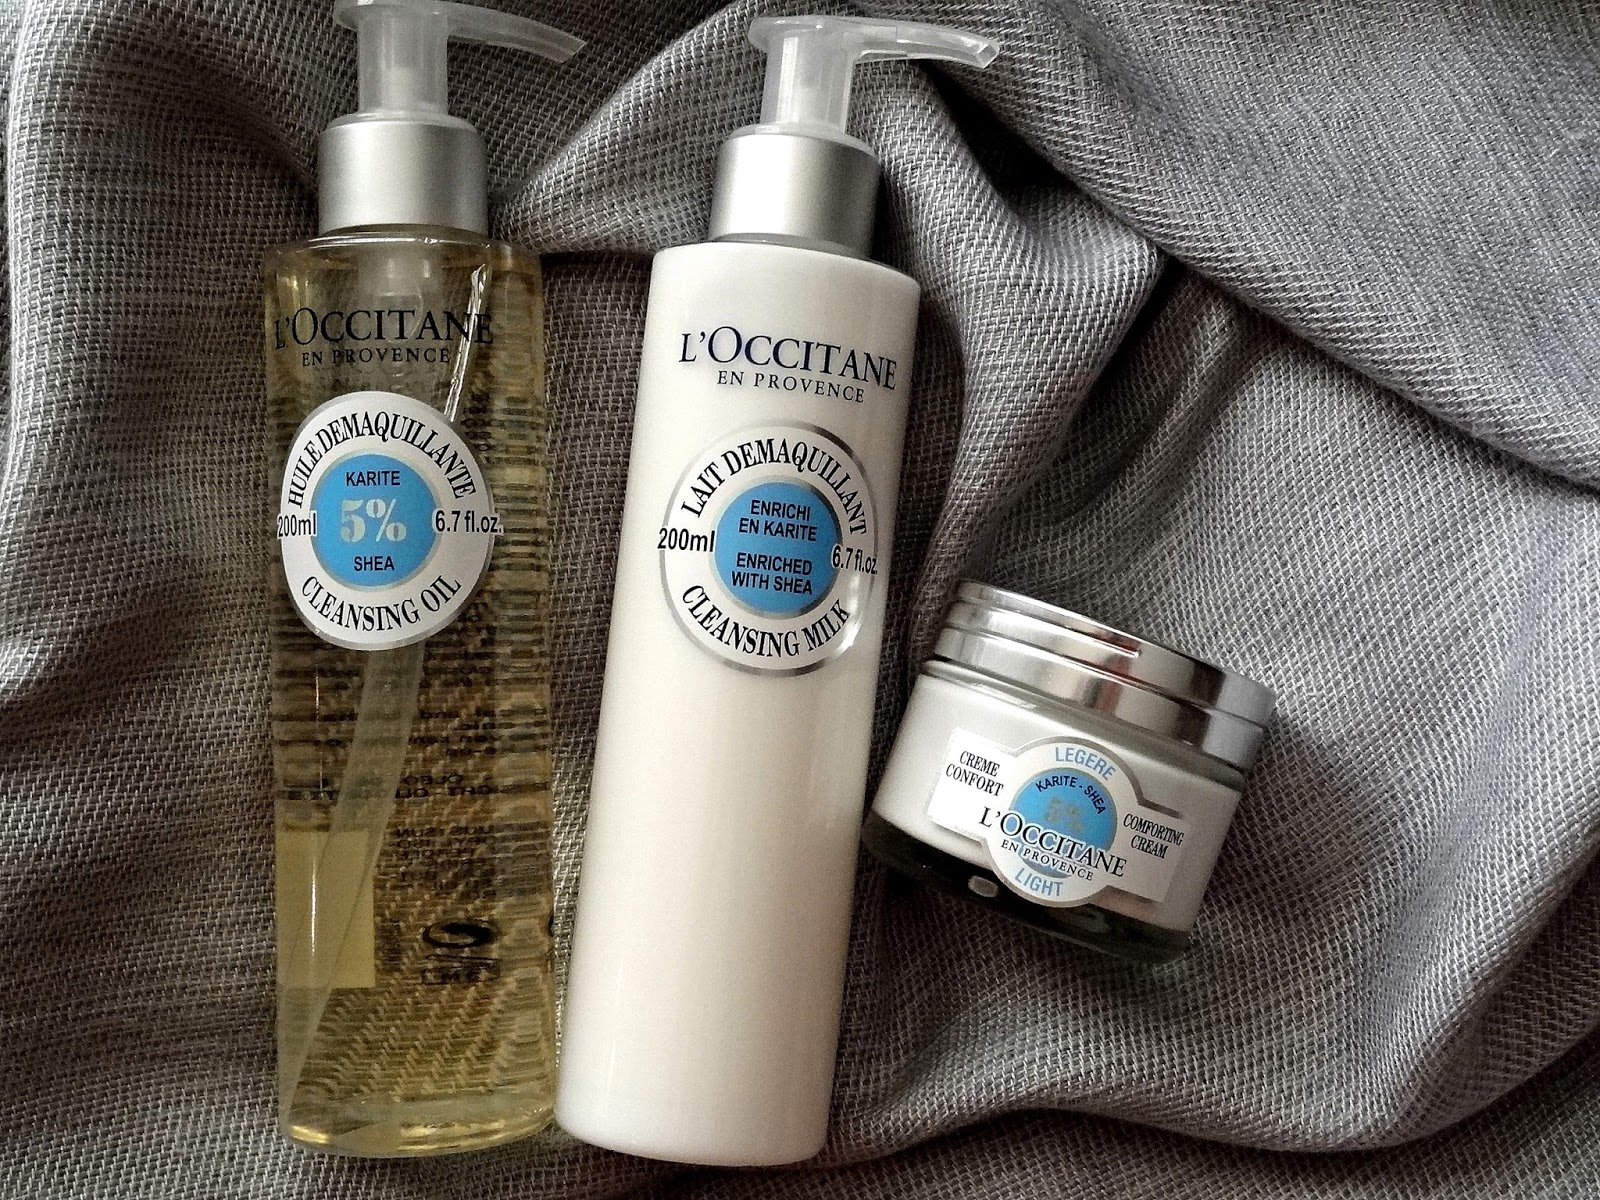 L'Occitane Shea Butter Comforting Skincare Collection | Cleansing Milk, Cleansing Oil and Light Comforting Cream Review, Photos